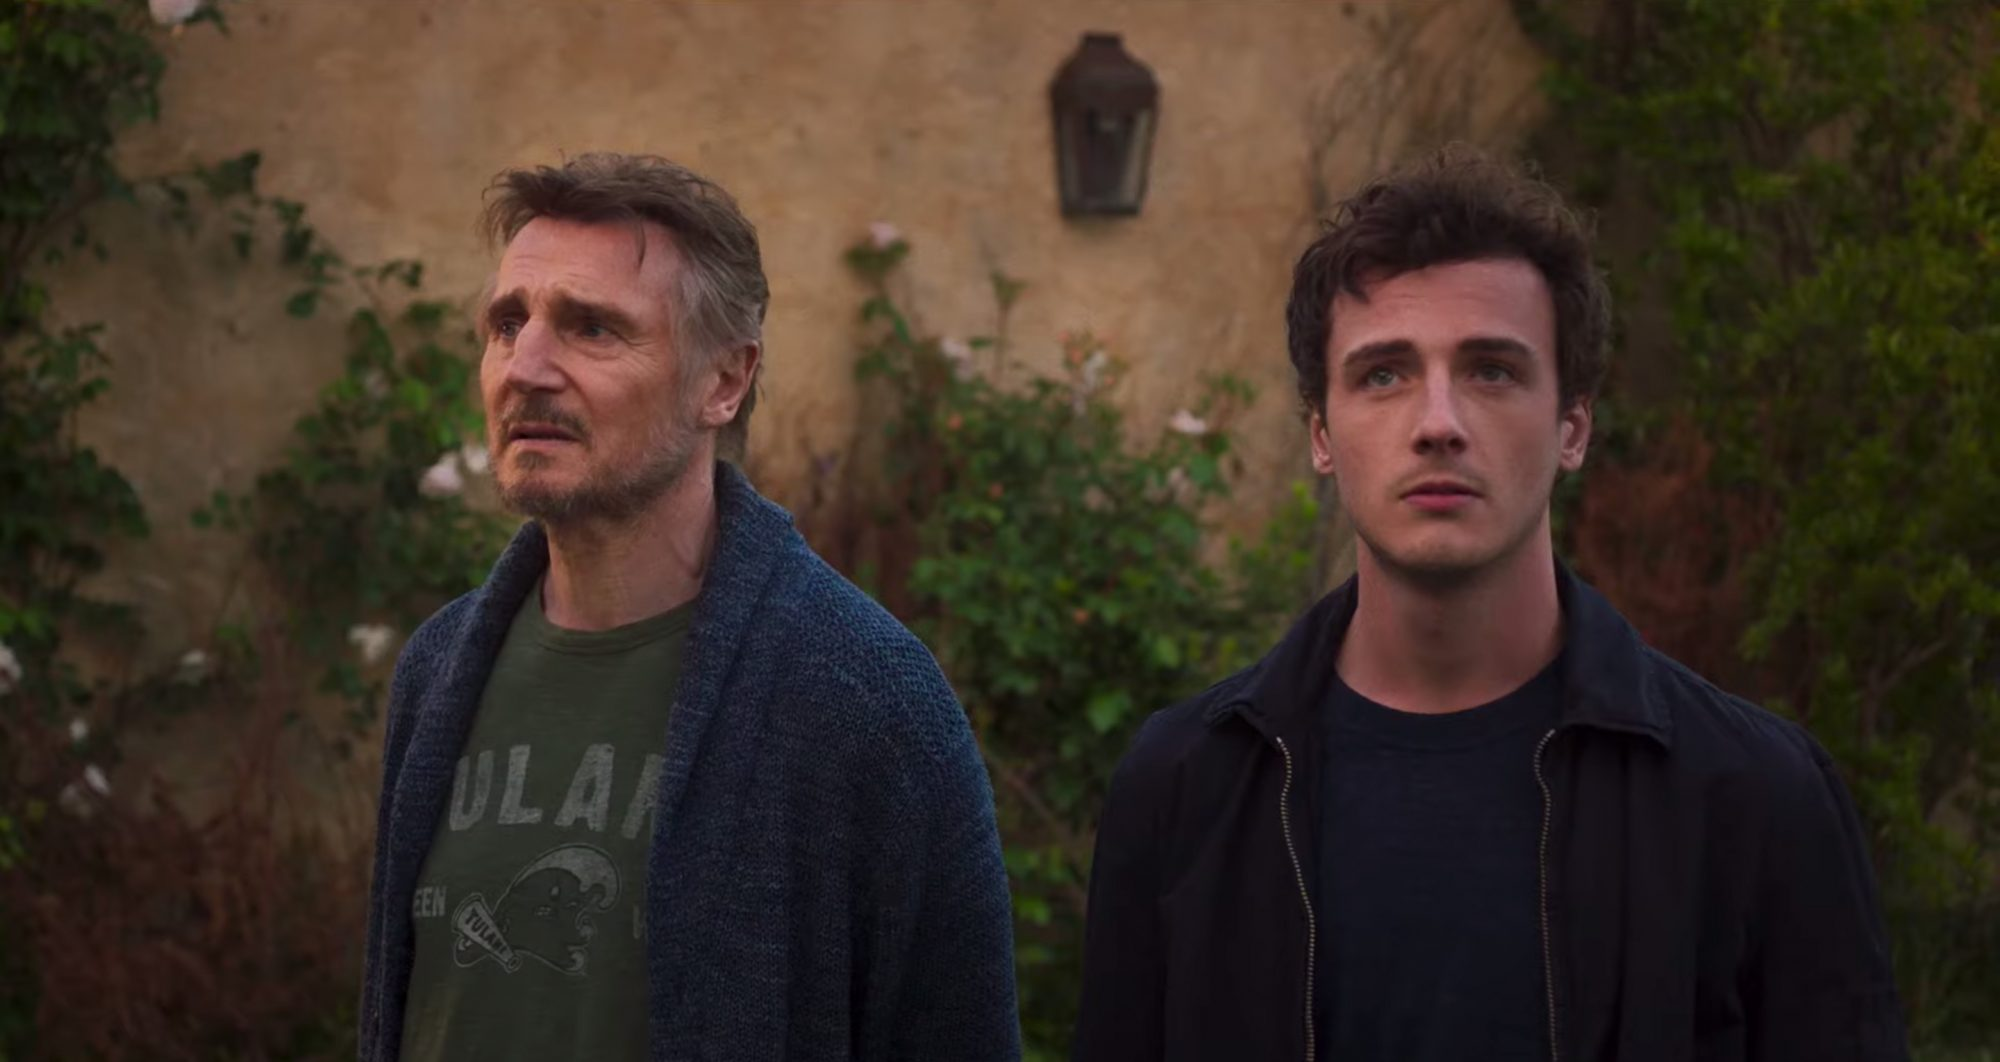 Liam Neeson and Micheál Richardson in James D'Arcy's MADE IN ITALY